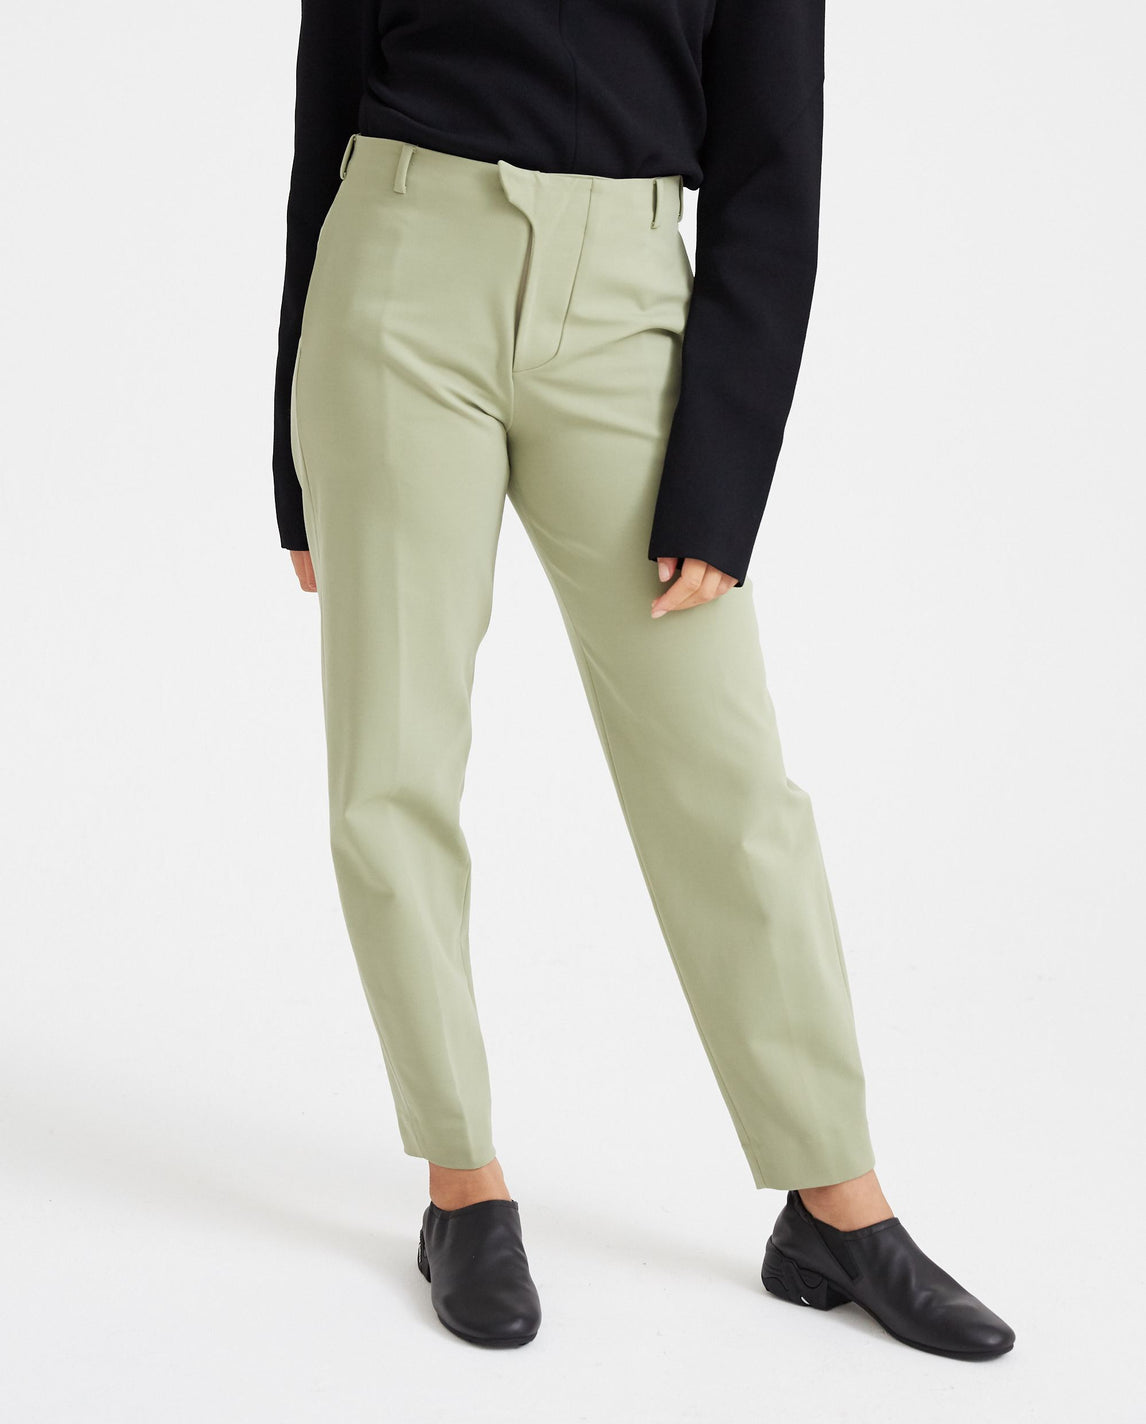 Tailored Jersey Trousers - Green WOMENS VEJAS